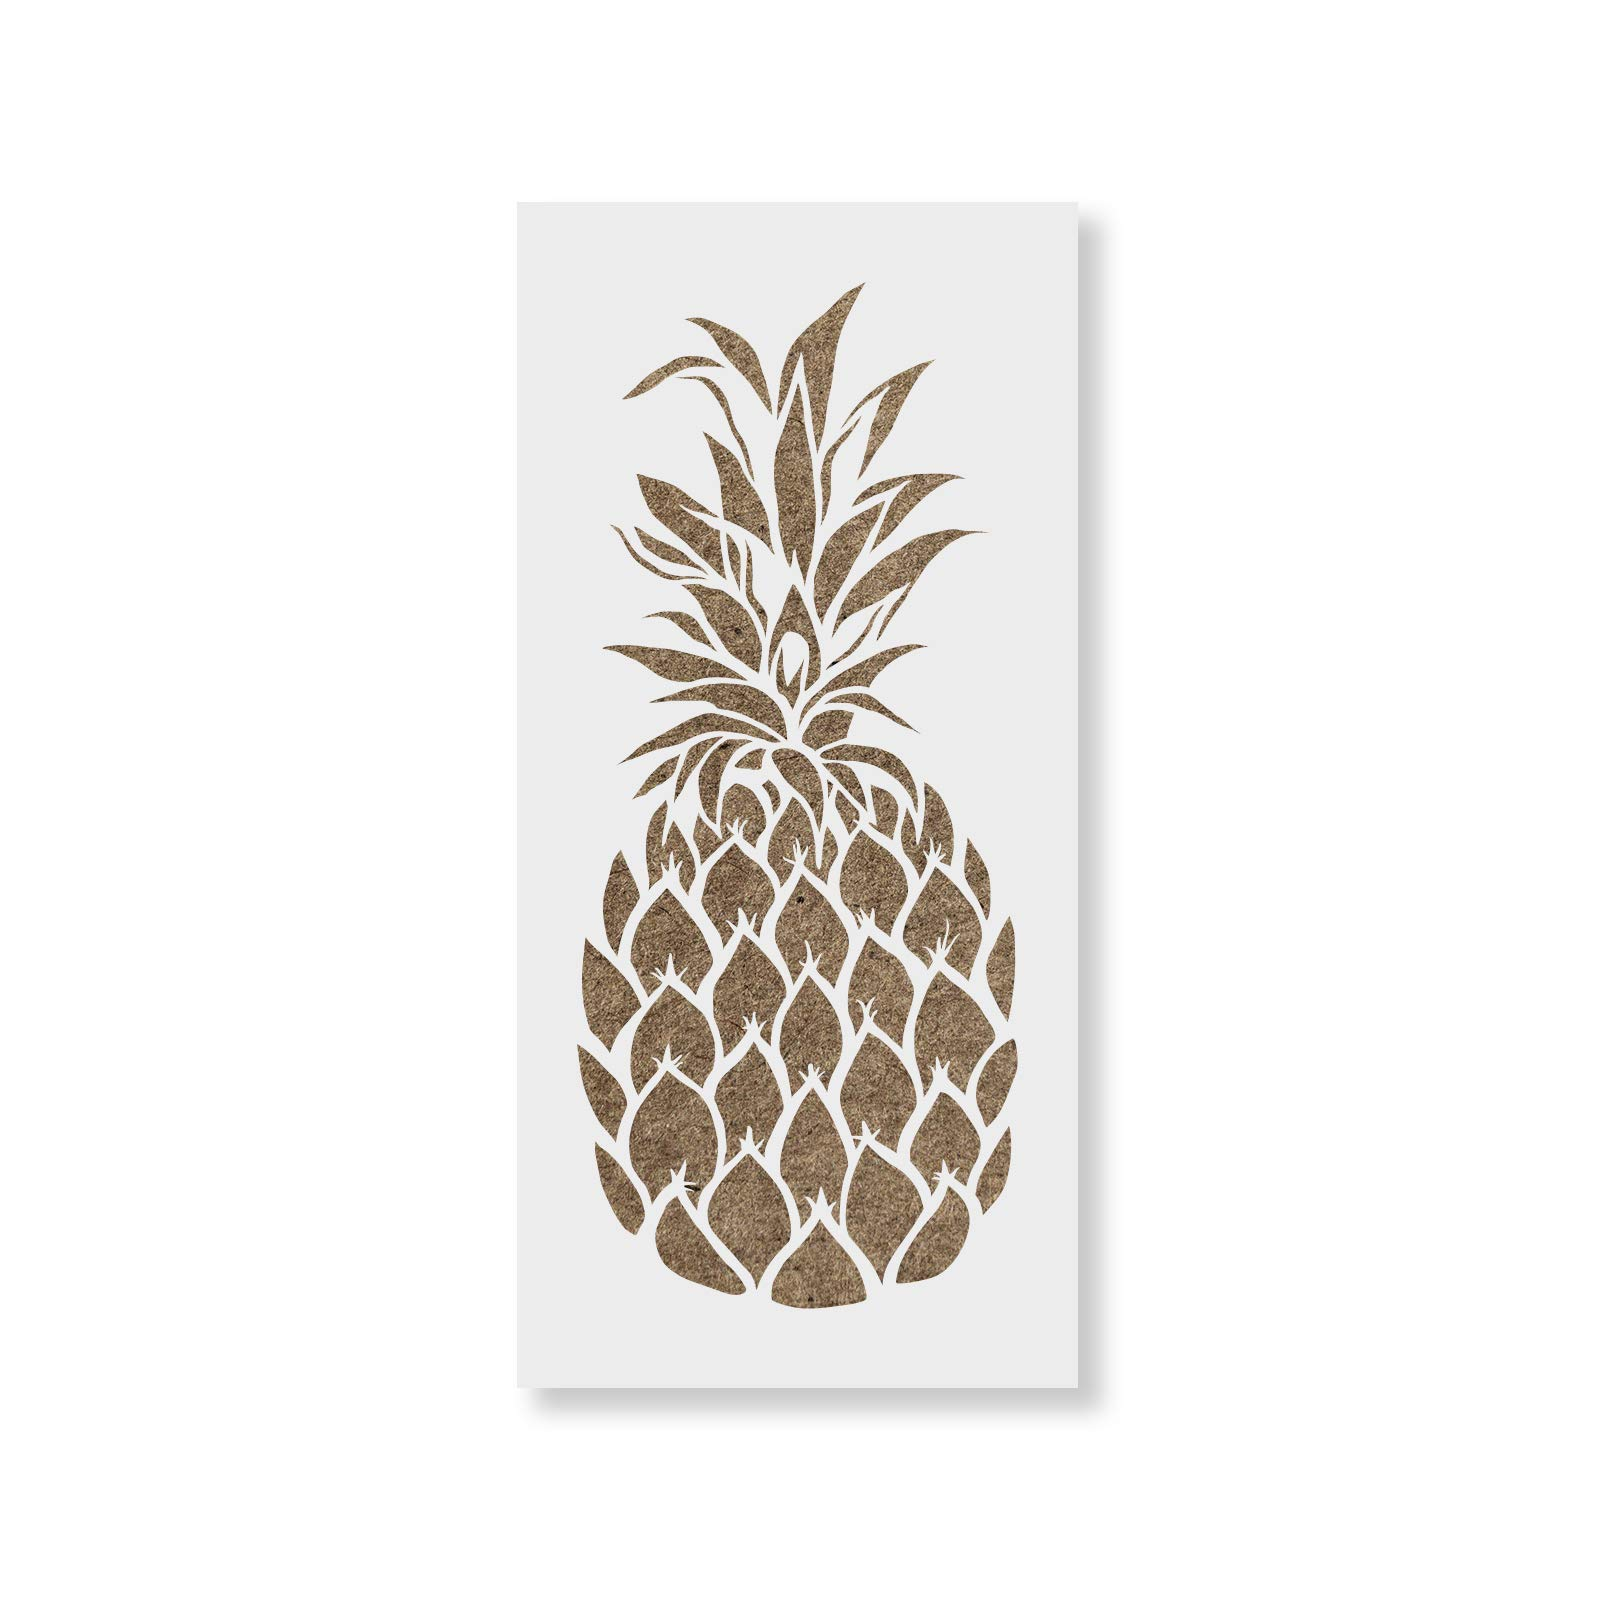 Pineapple Stencil Template for Walls and Crafts - Reusable Stencils for Painting in Small & Large Sizes by Stencil Revolution